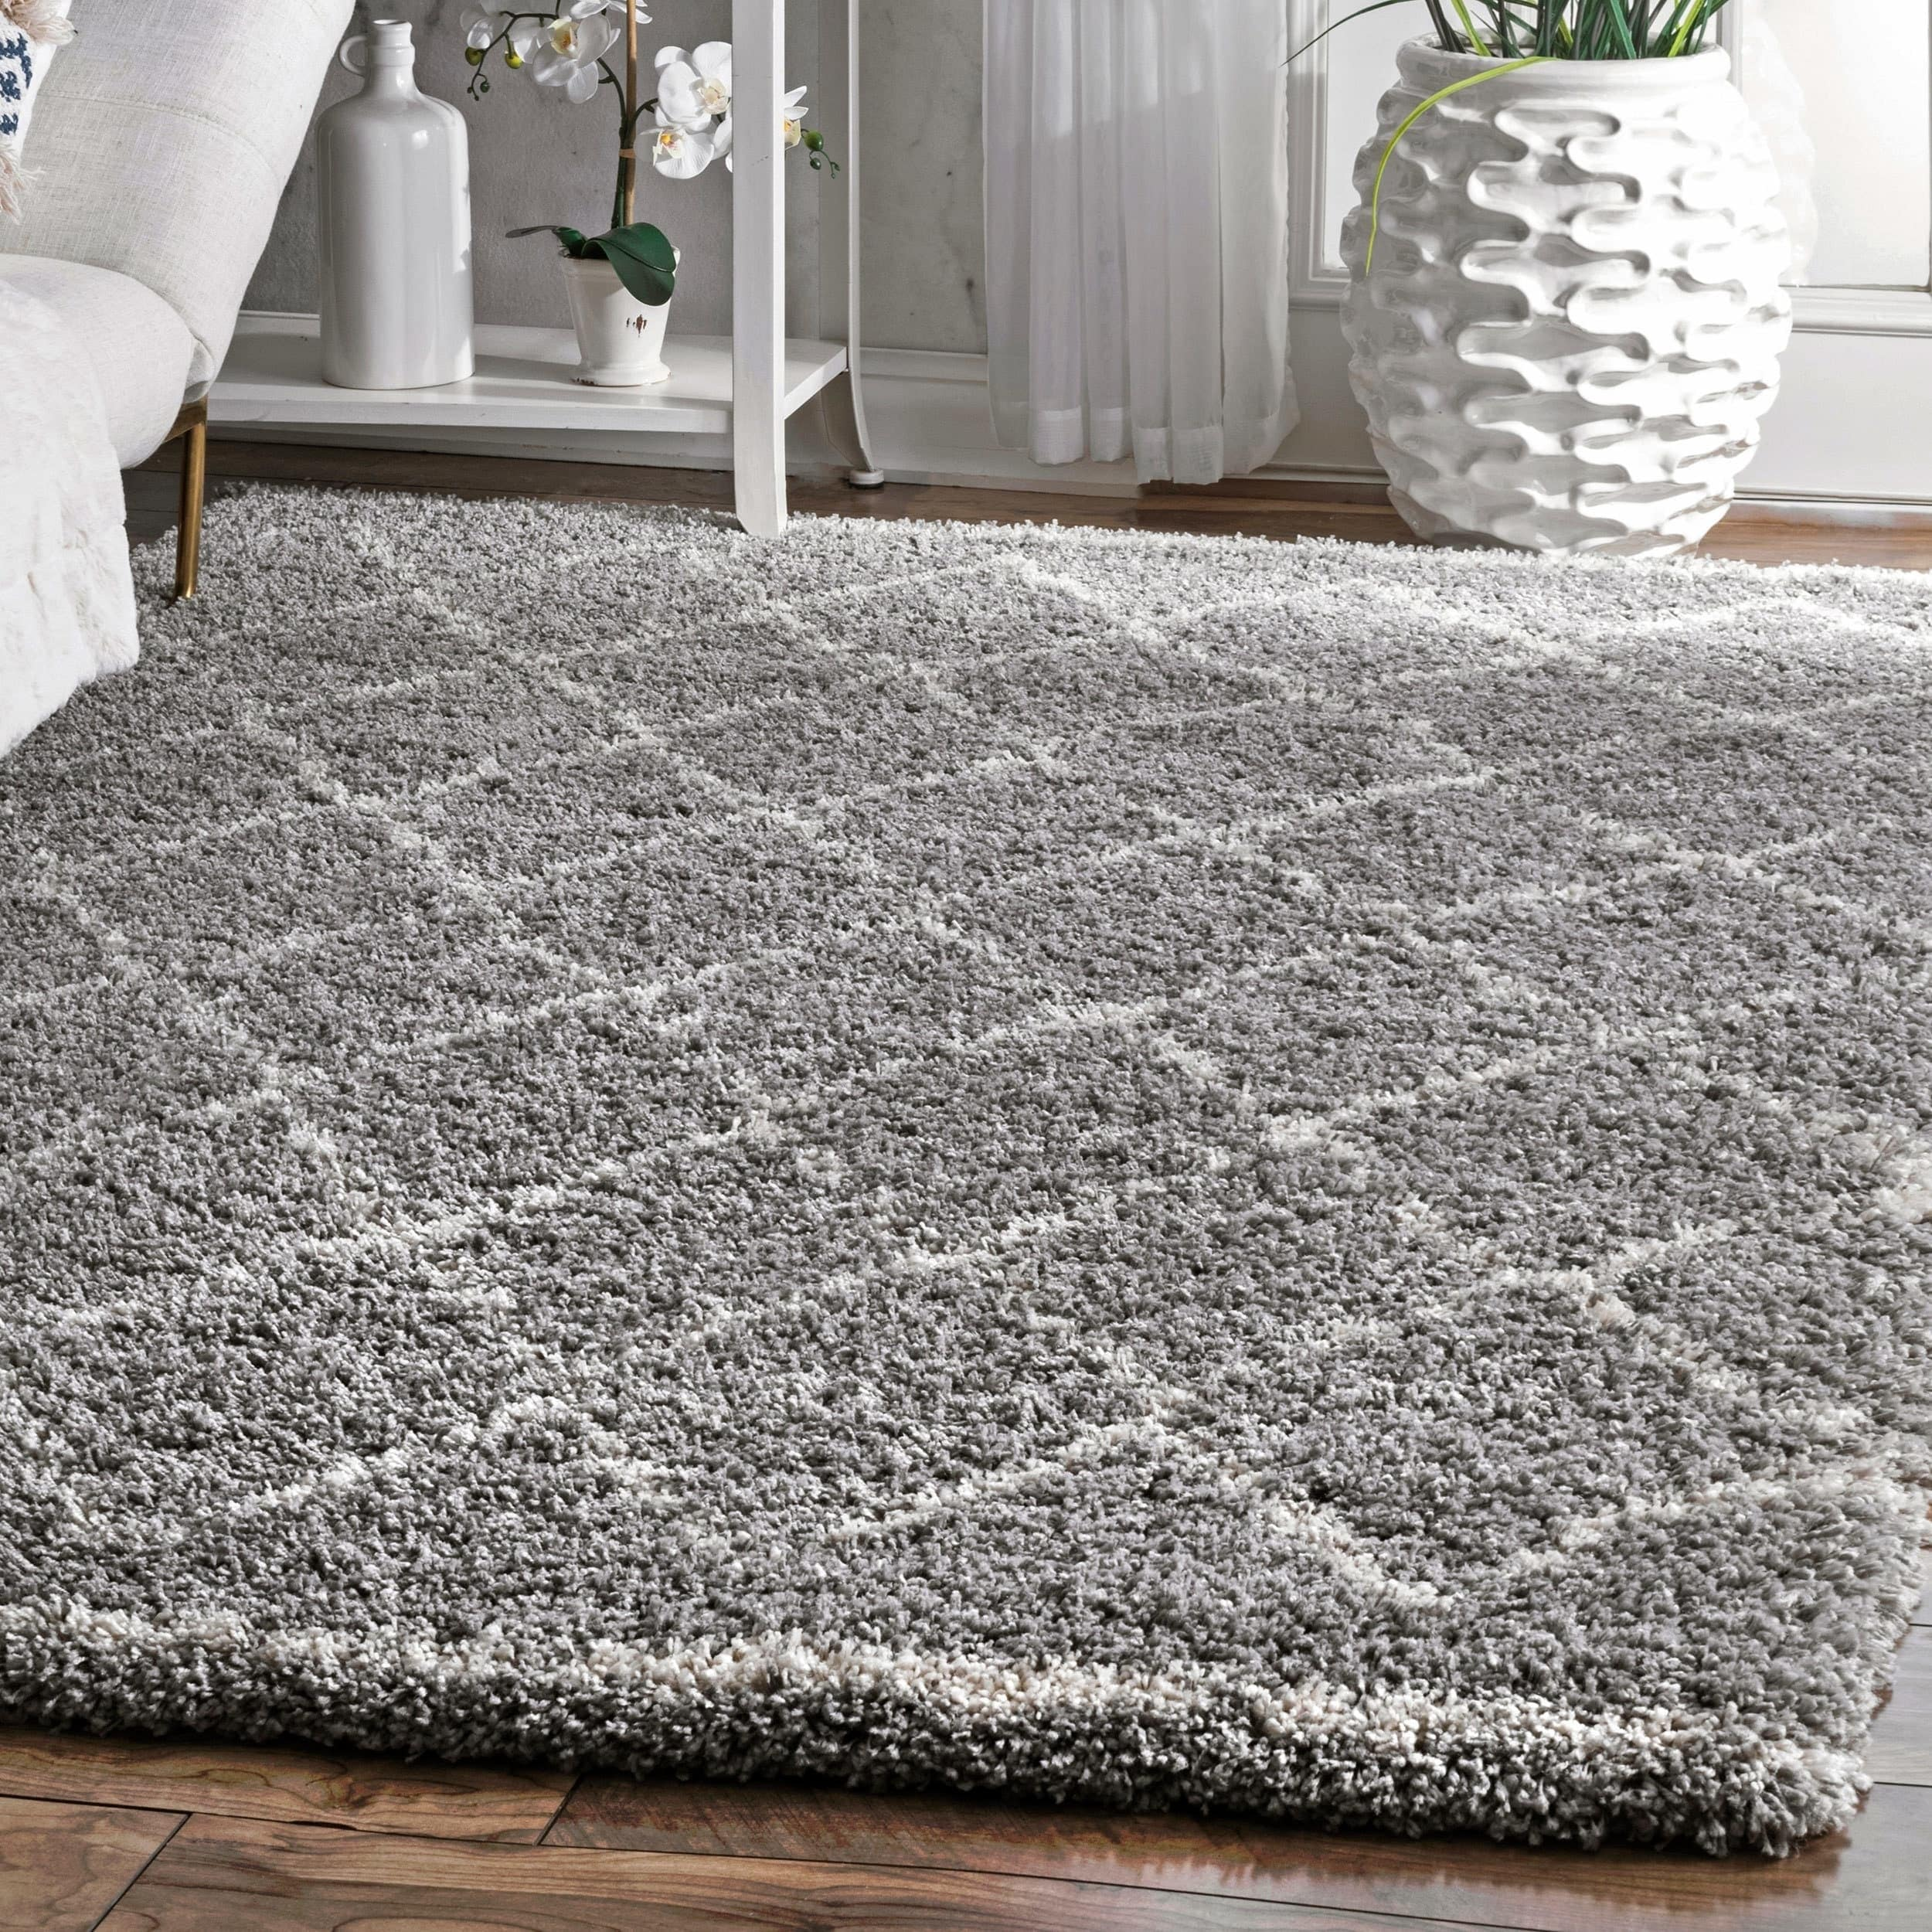 The Curated Nomad Delroy Manor Grey Soft and Plush Moroccan Trellis Shag Area Rug - 67 x 9 - 67 x 9 (67 x 9 - Grey)